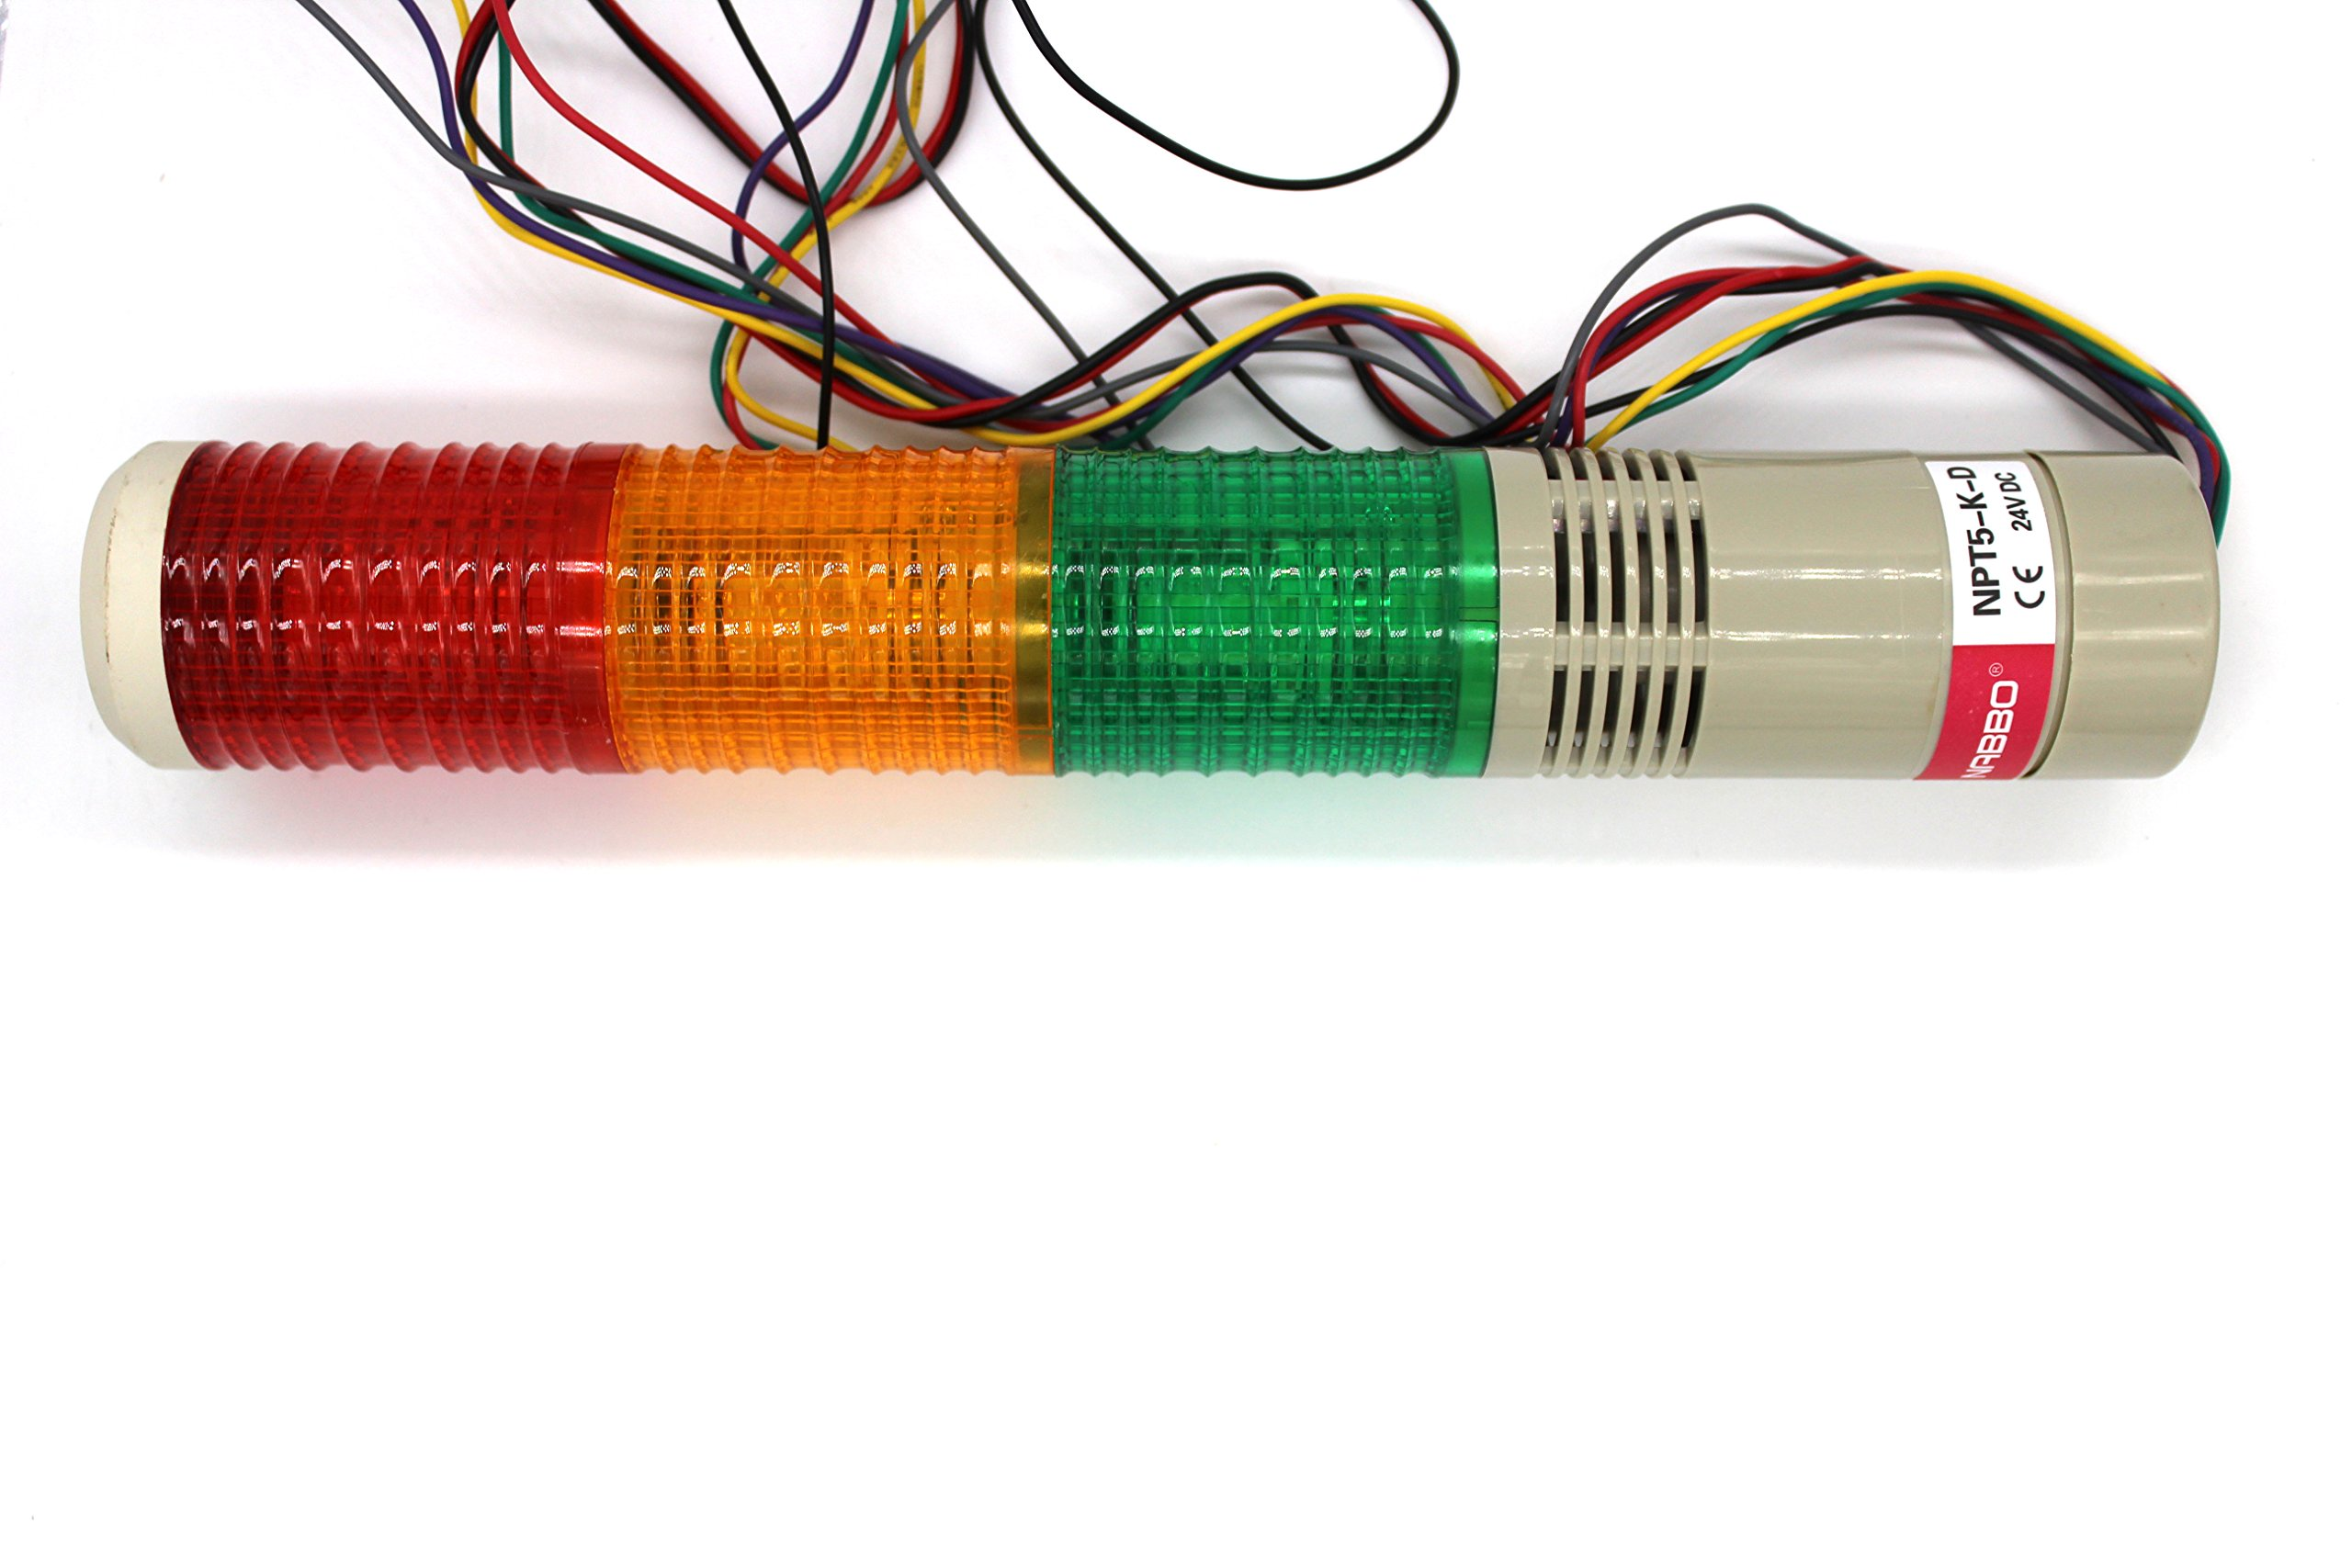 MAJIAWEI Industrial Signal Light Column LED Alarm Round Tower Light Indicator Warning Light Red Green Yellow DC 24V (Steady ON OR Steady Flash)